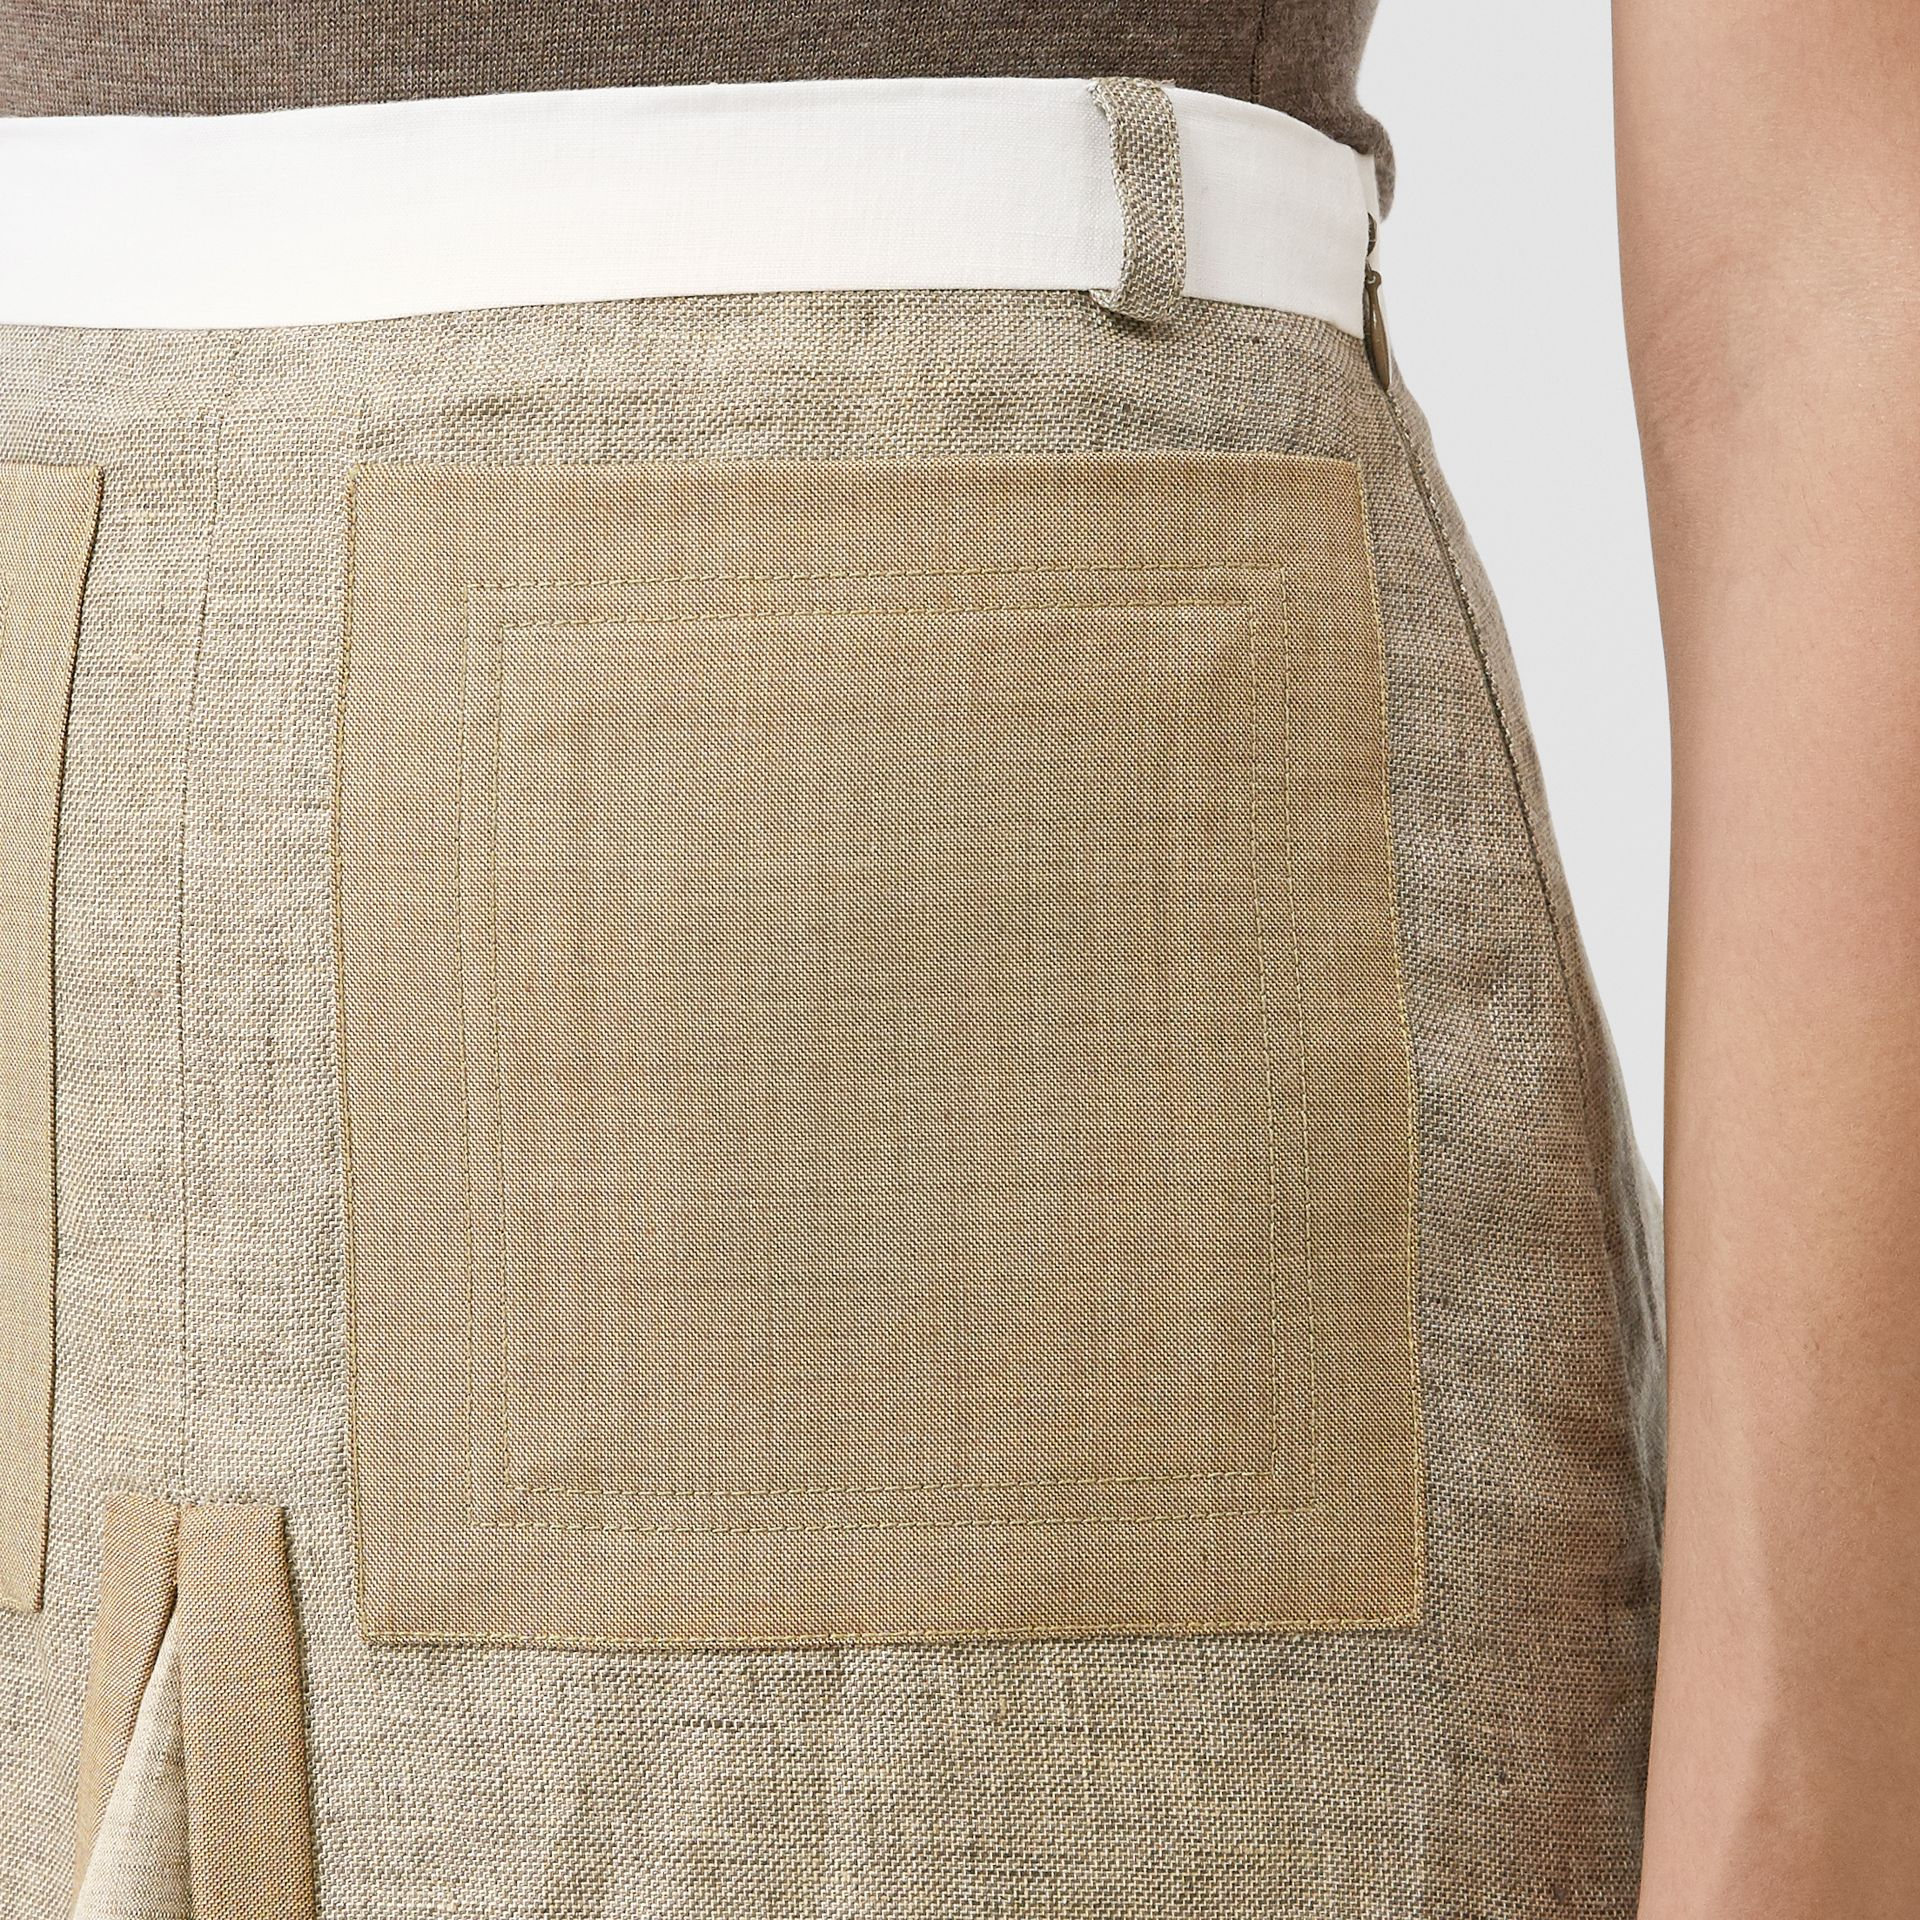 Contrast Seam and Box-pleat Detail Linen A-line Skirt in Cedar Brown Melange - Women | Burberry - gallery image 1